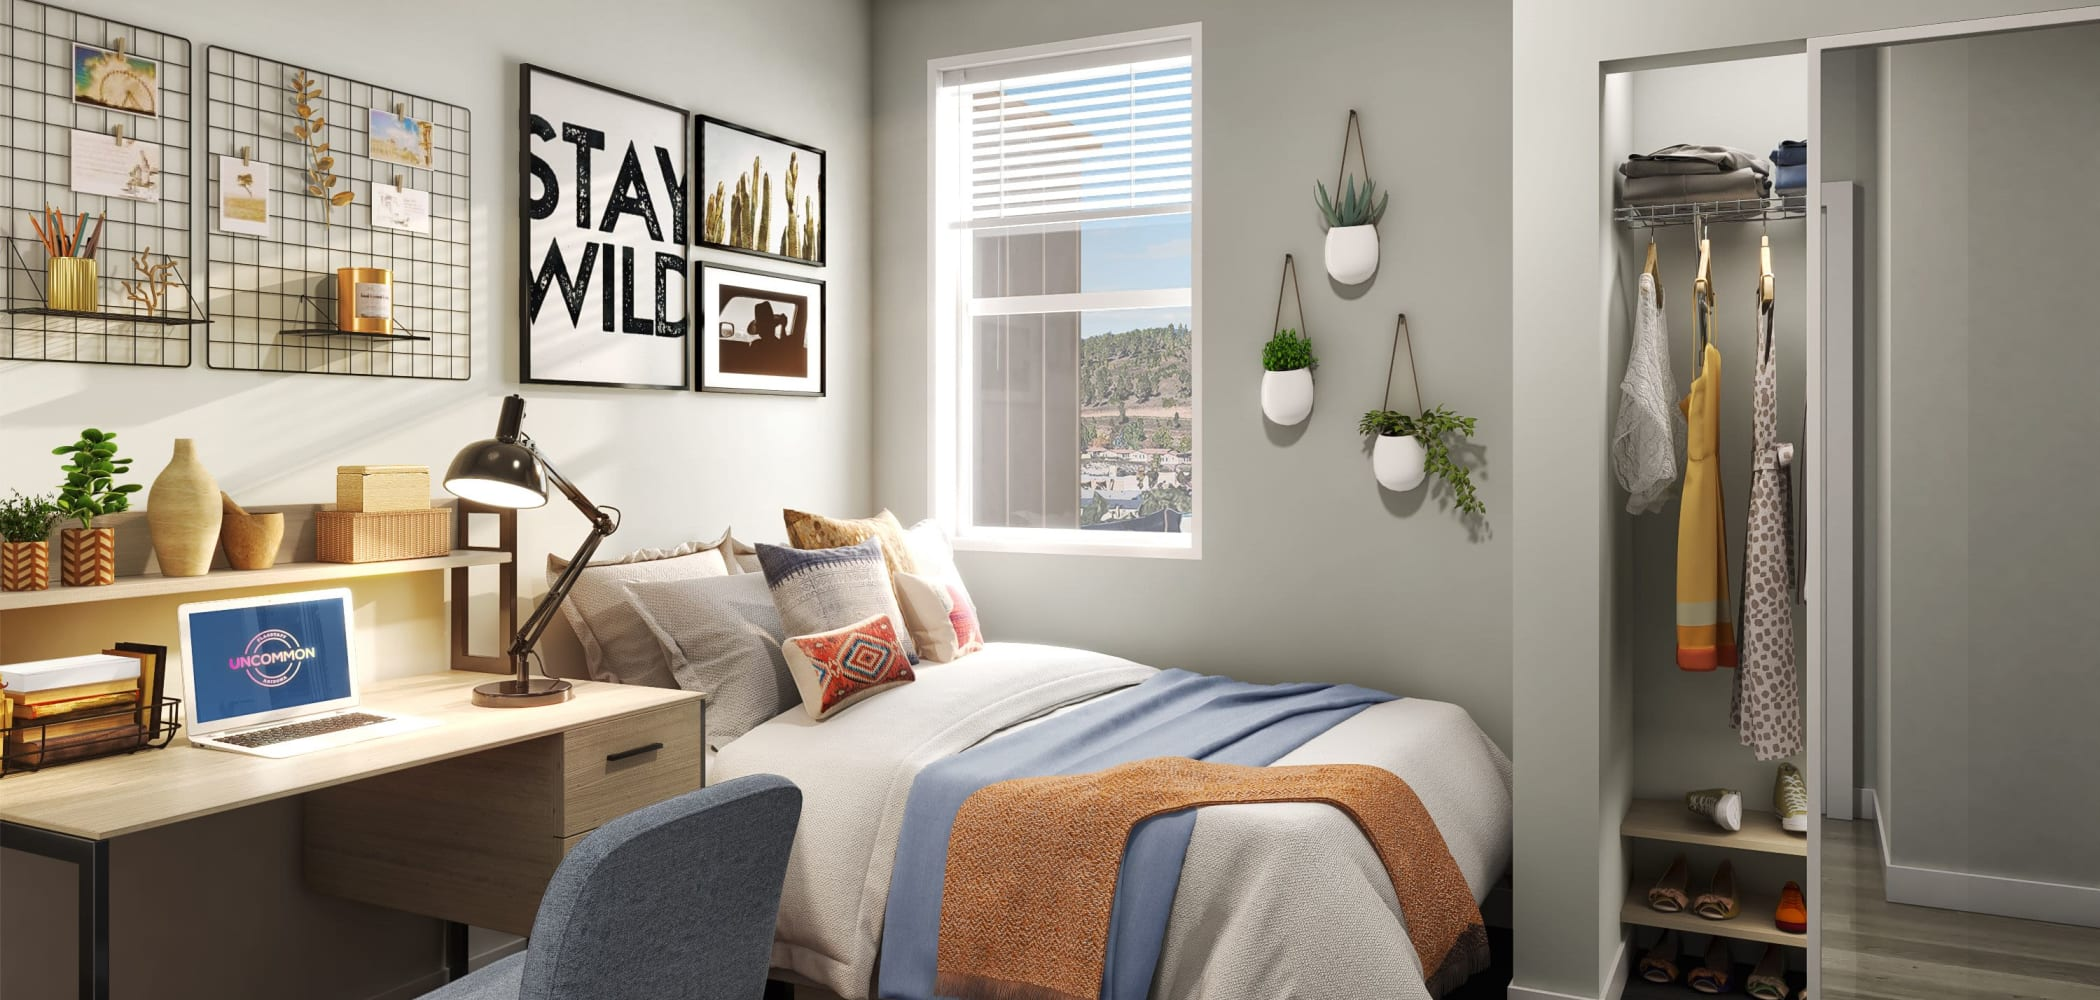 Bedroom with space to study at UNCOMMON Flagstaff in Flagstaff, Arizona